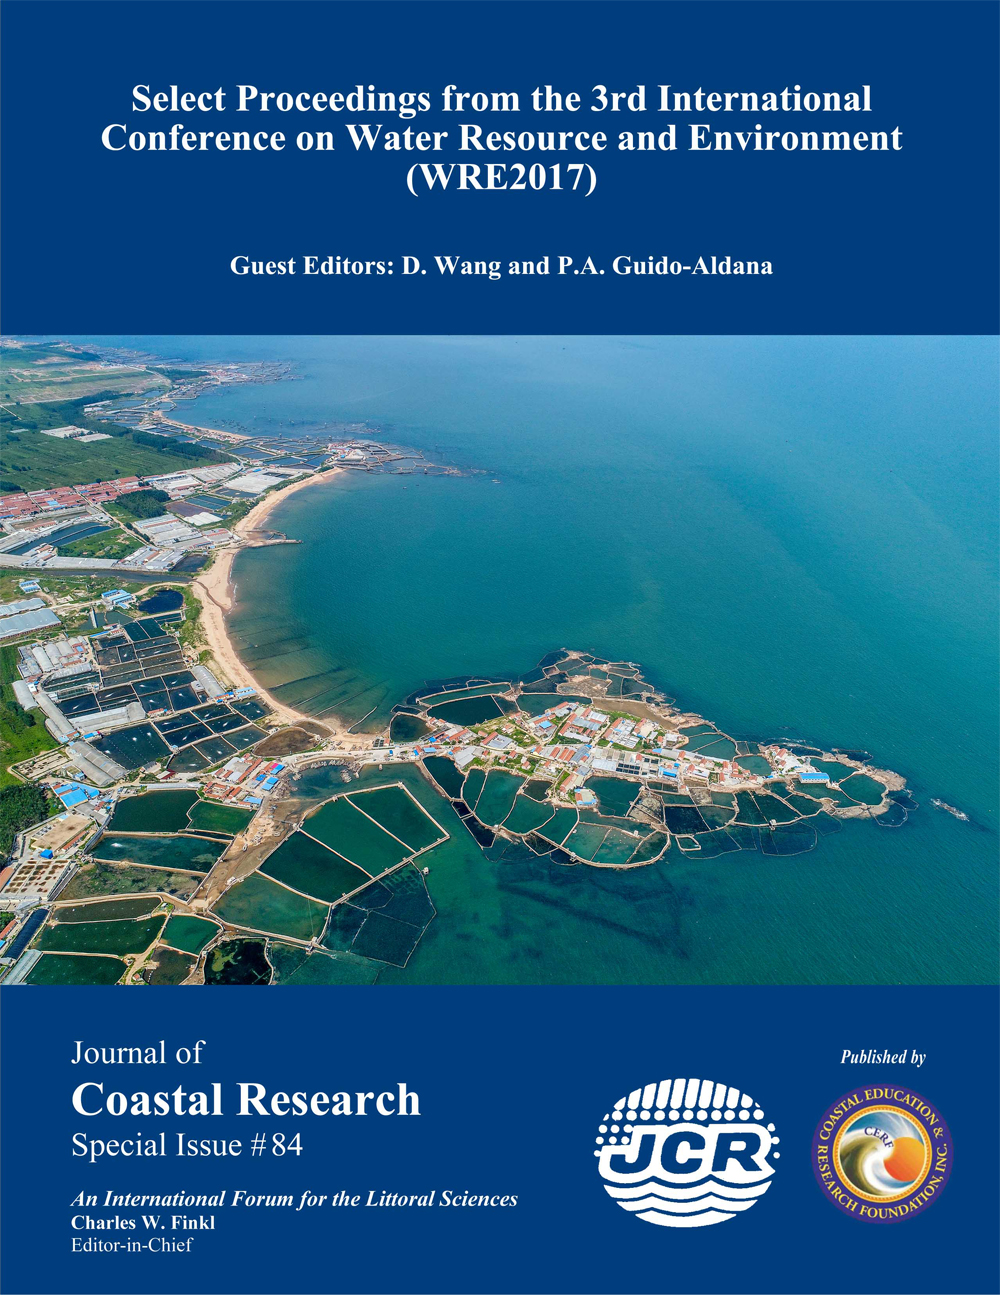 #84 Select Proceedings from the 3rd International Conference on Water Resource and Environment (WRE2017)